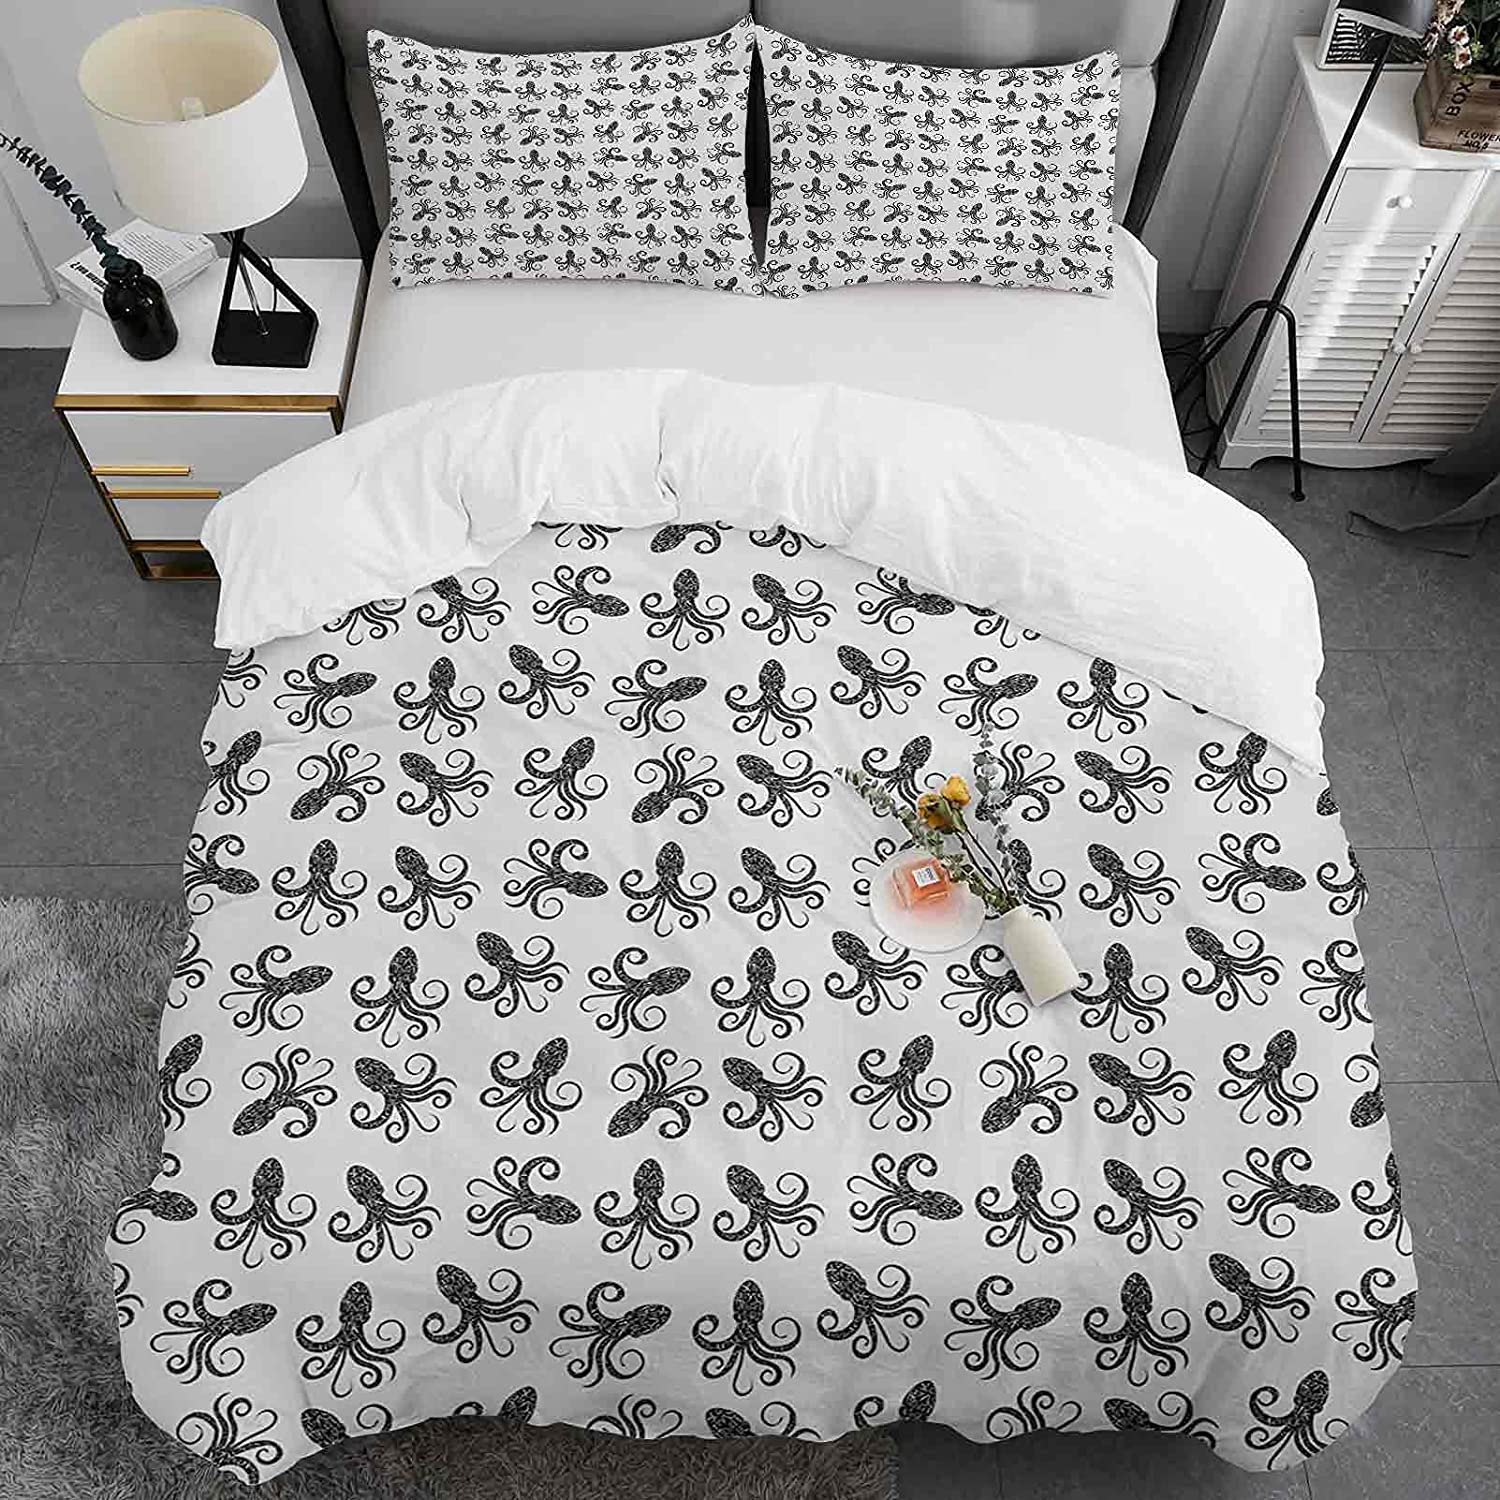 sale Octopus Cotton Duvet Outlet SALE Cover King Size with Typographic M Pattern